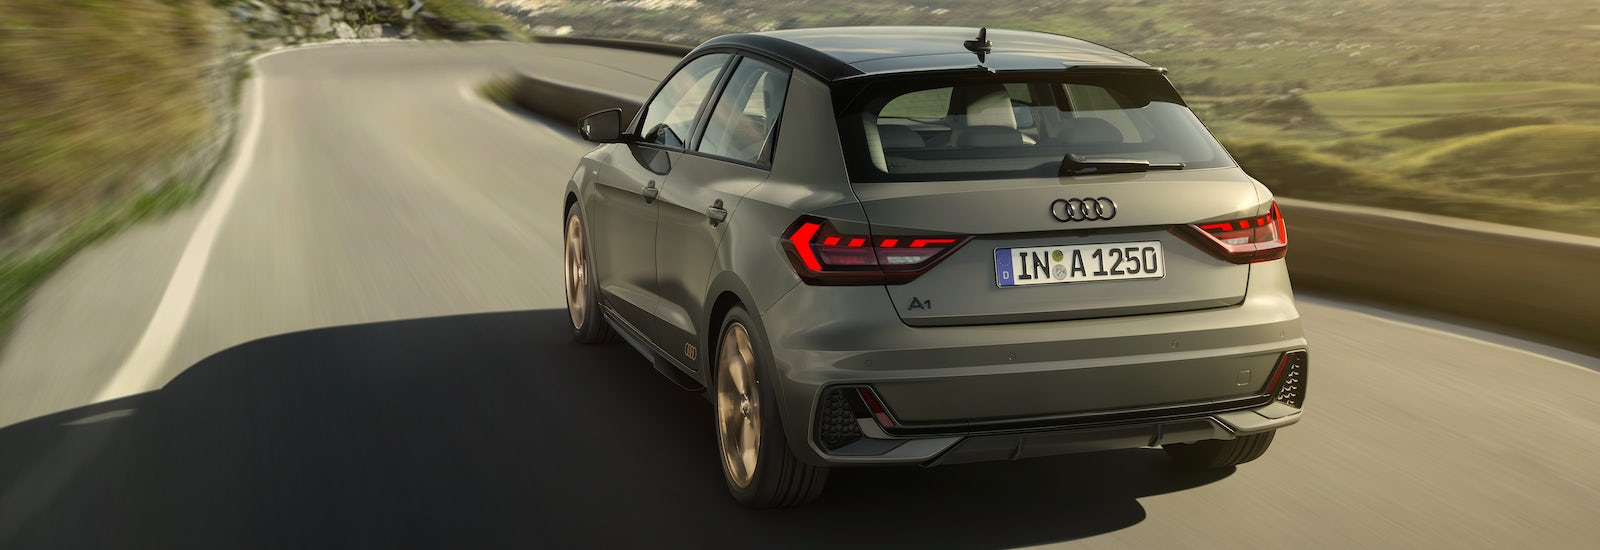 Audi A Price Specs And Release Date Carwow - Audi a1 2018